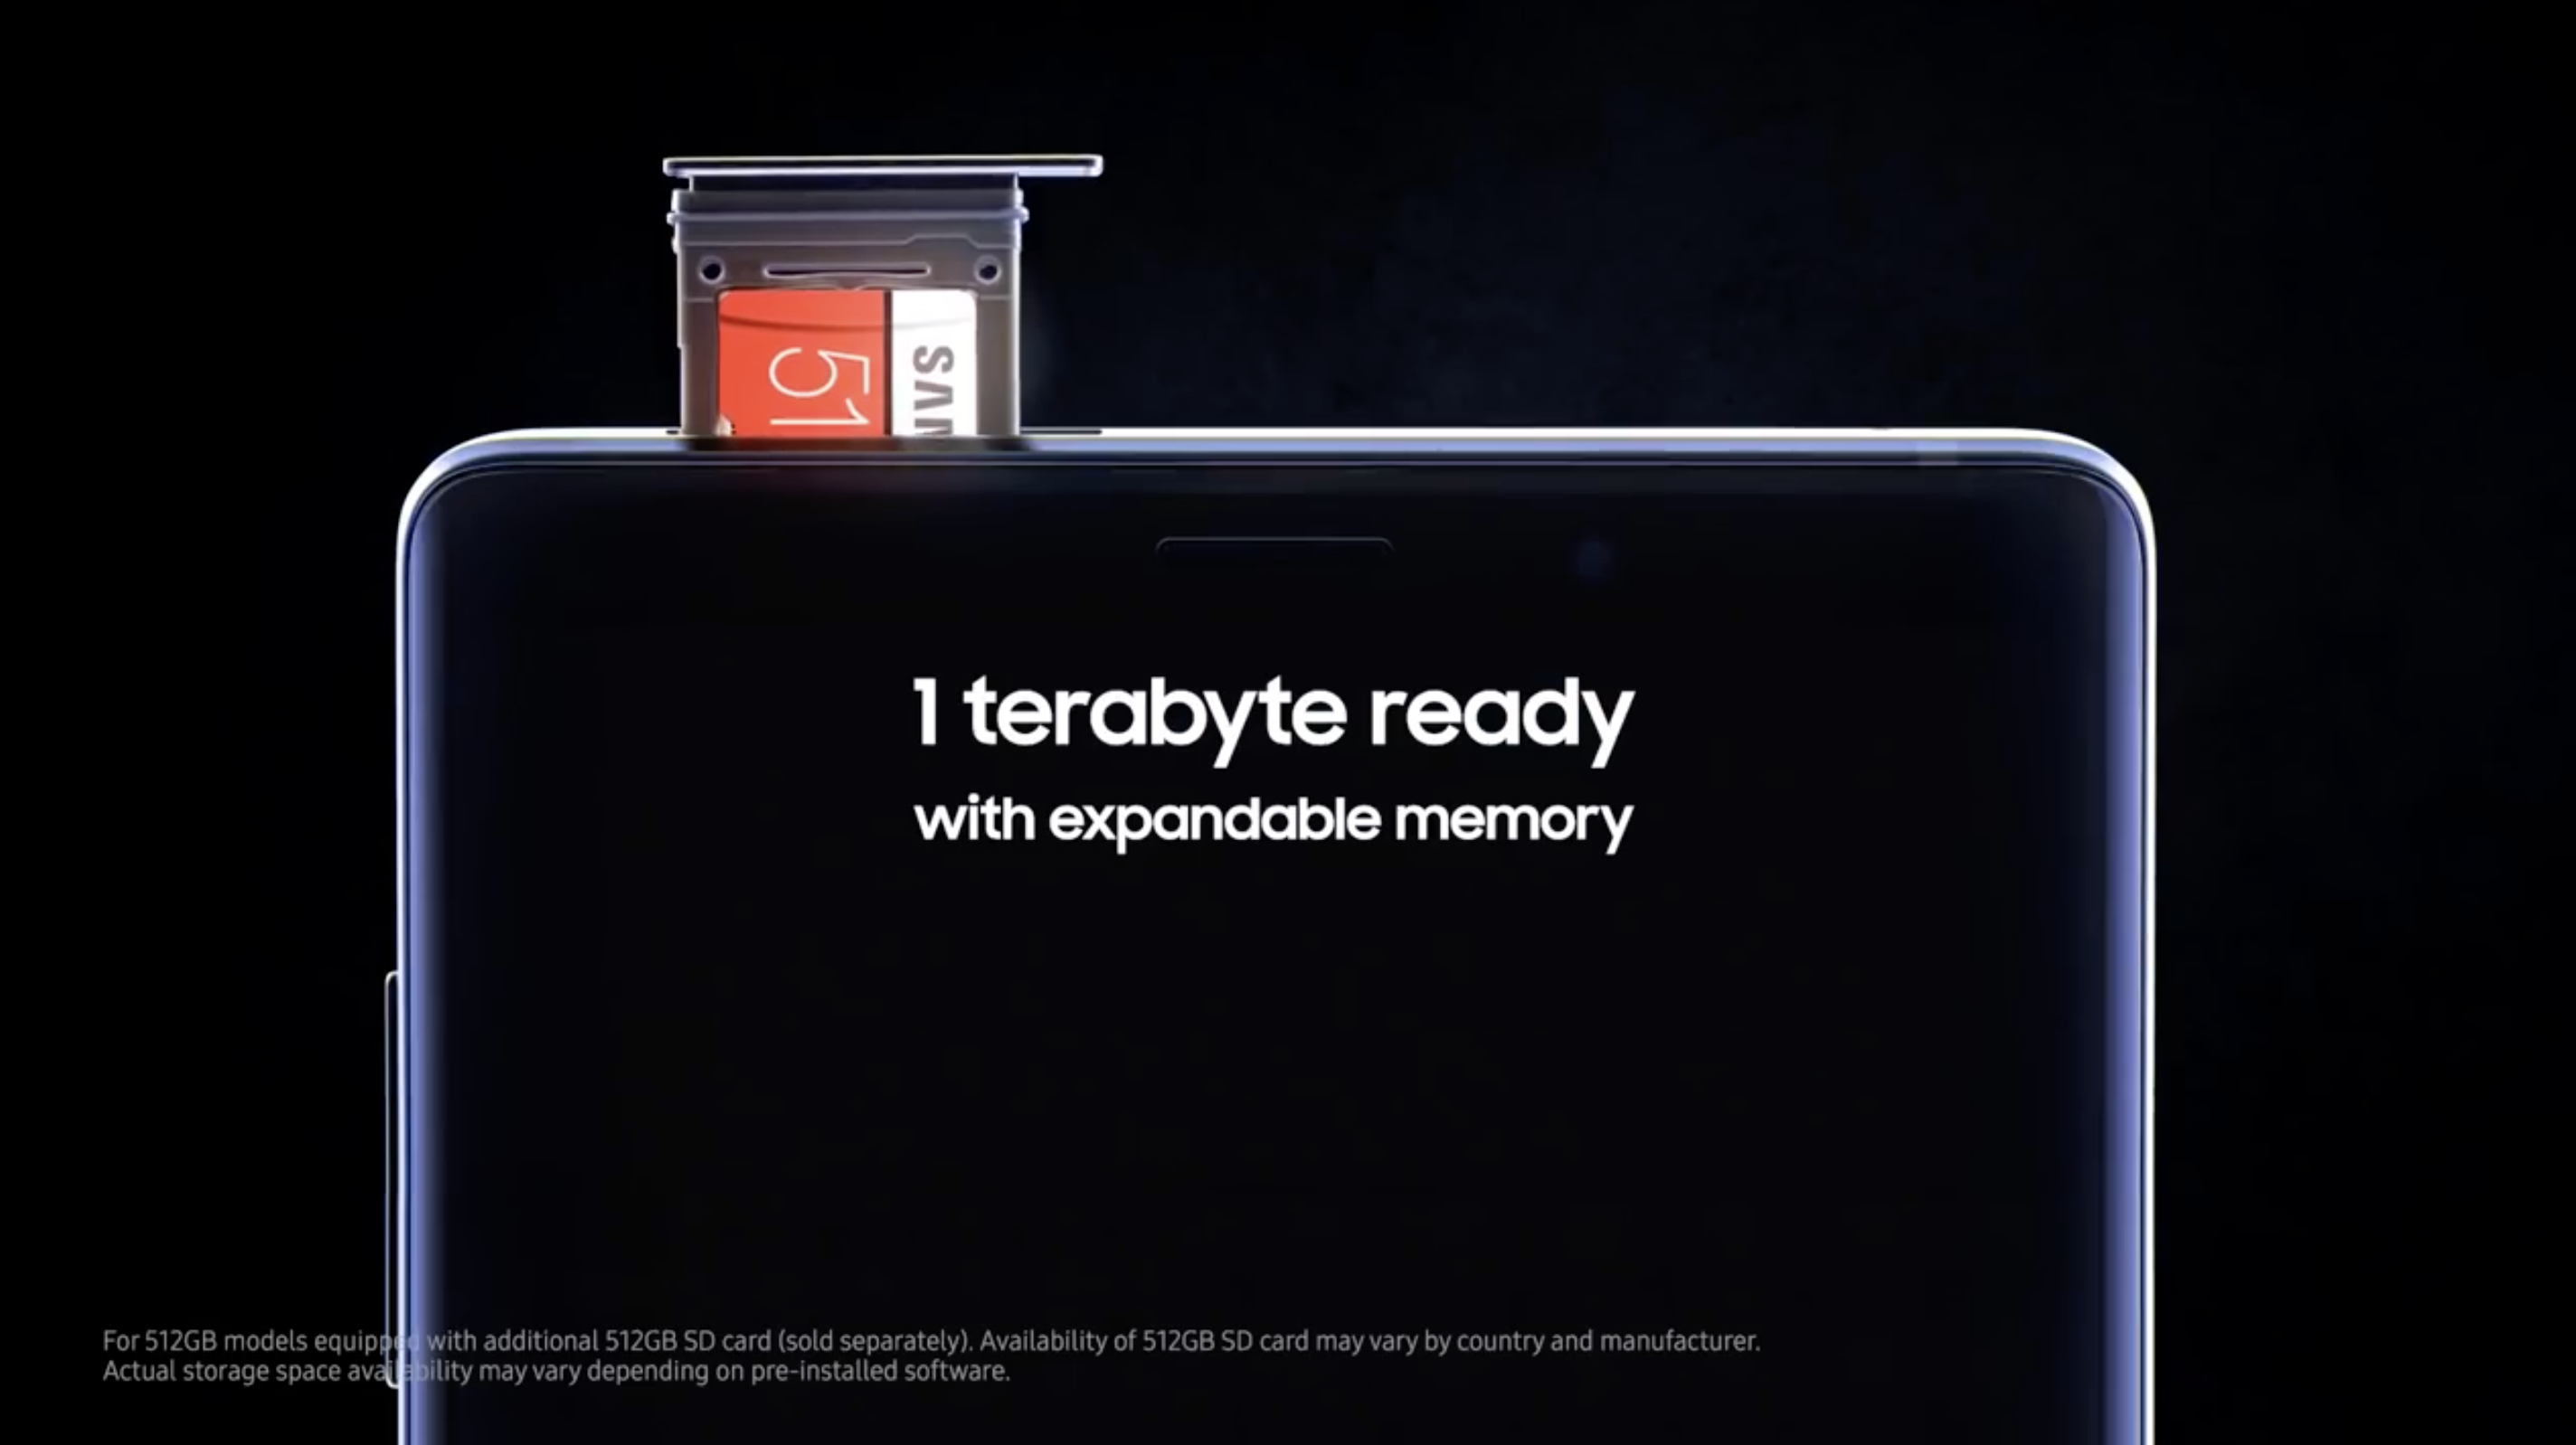 Samsung Galaxy Note 9 promotional video leaks ahead of launch